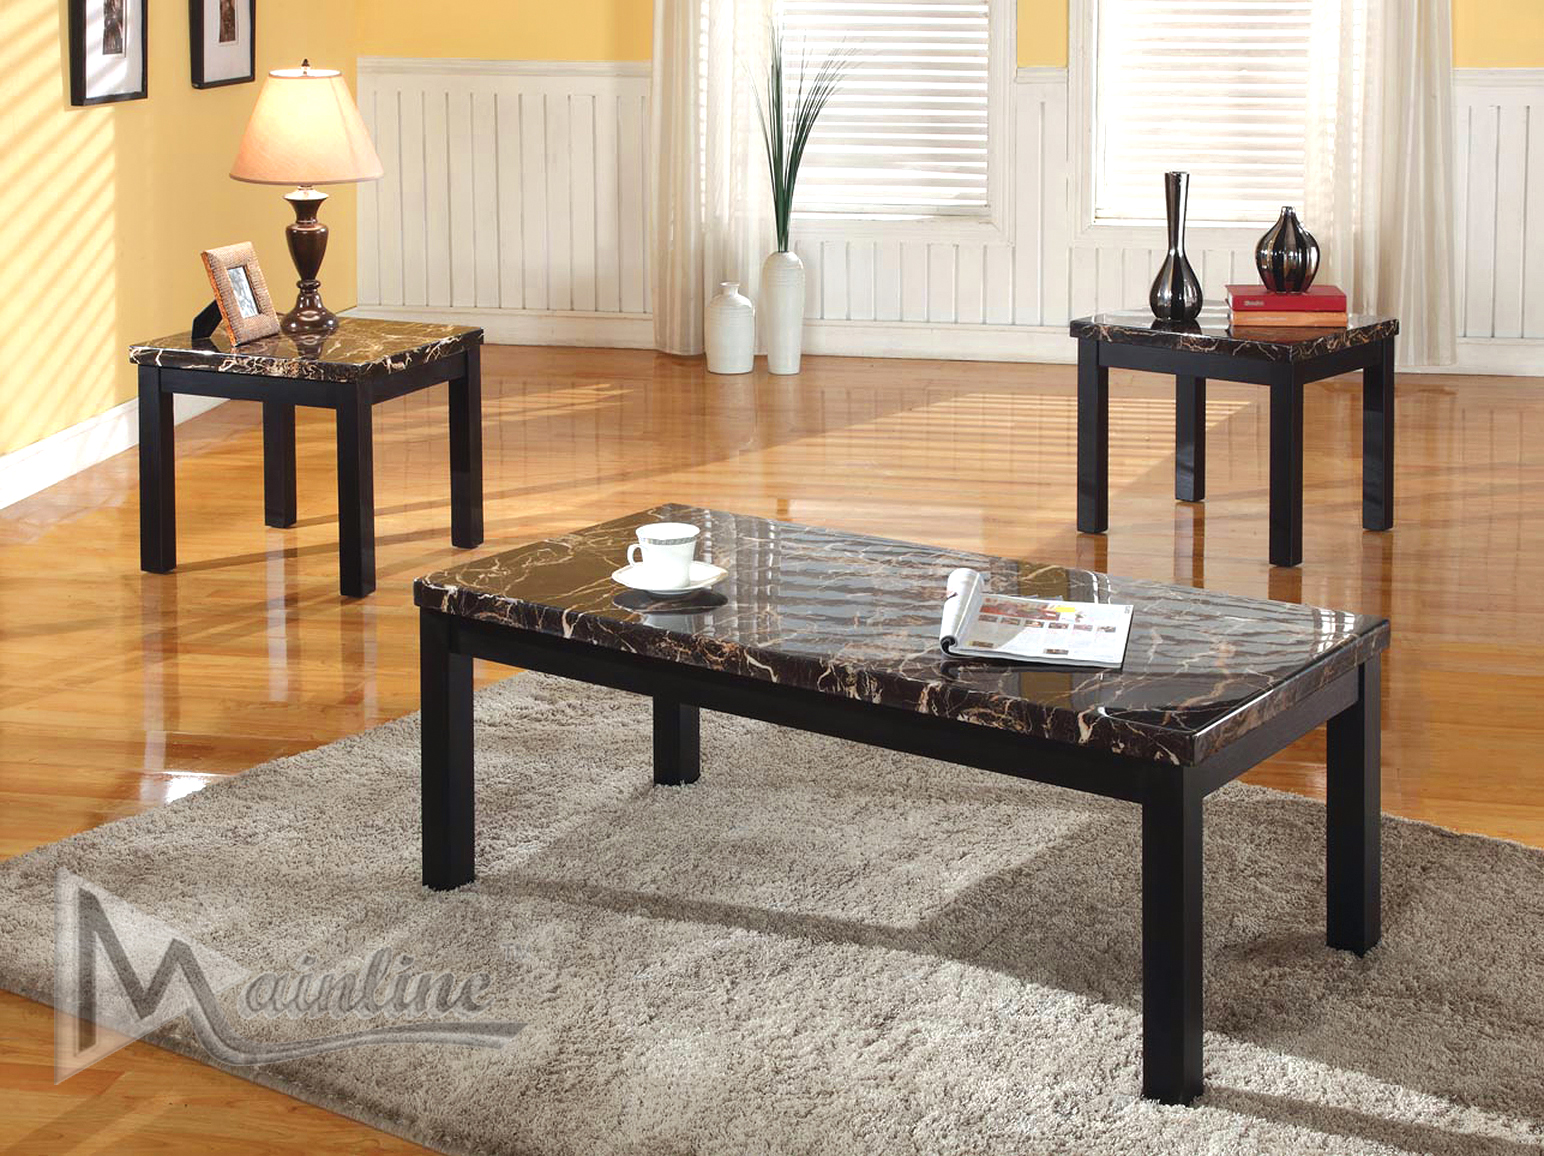 Occasional Tables Landmark Outdoor Furniture 100 Occasional Table Midori Coffee Table With